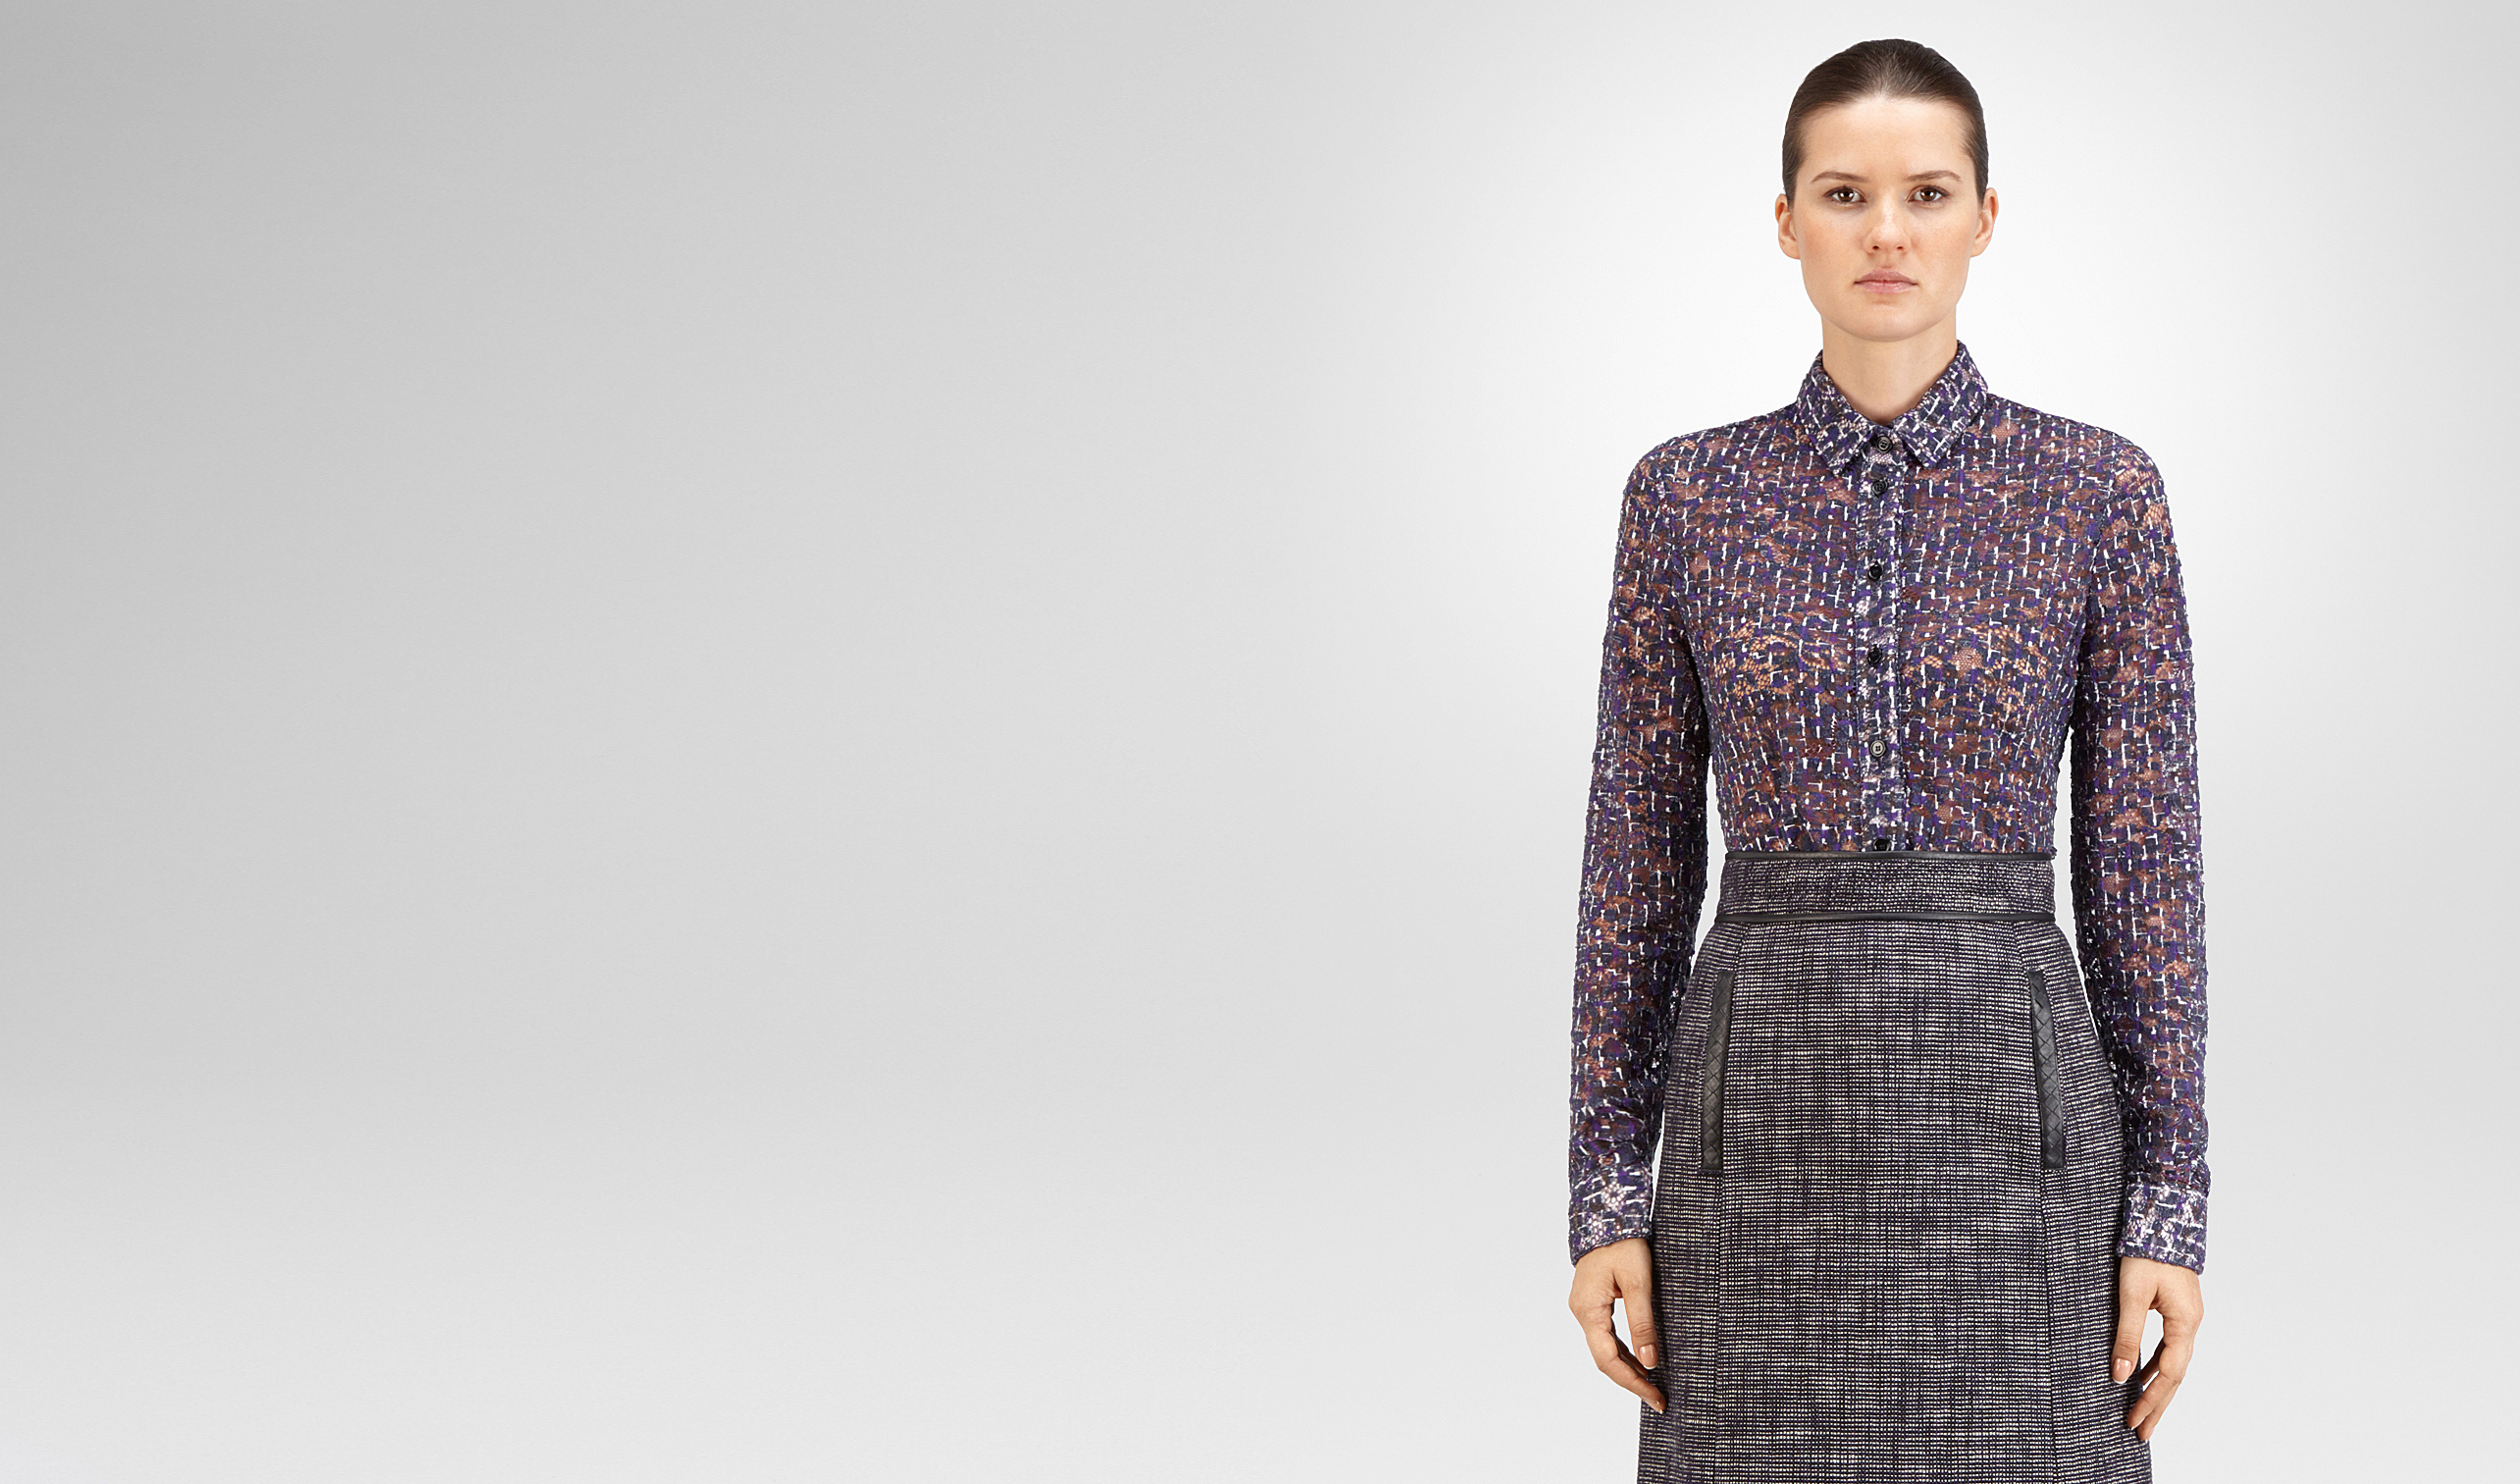 BOTTEGA VENETA Knitwear or Top or Shirt D SHIRT IN MIST PACIFIC VIOLET PRINTED LACE pl